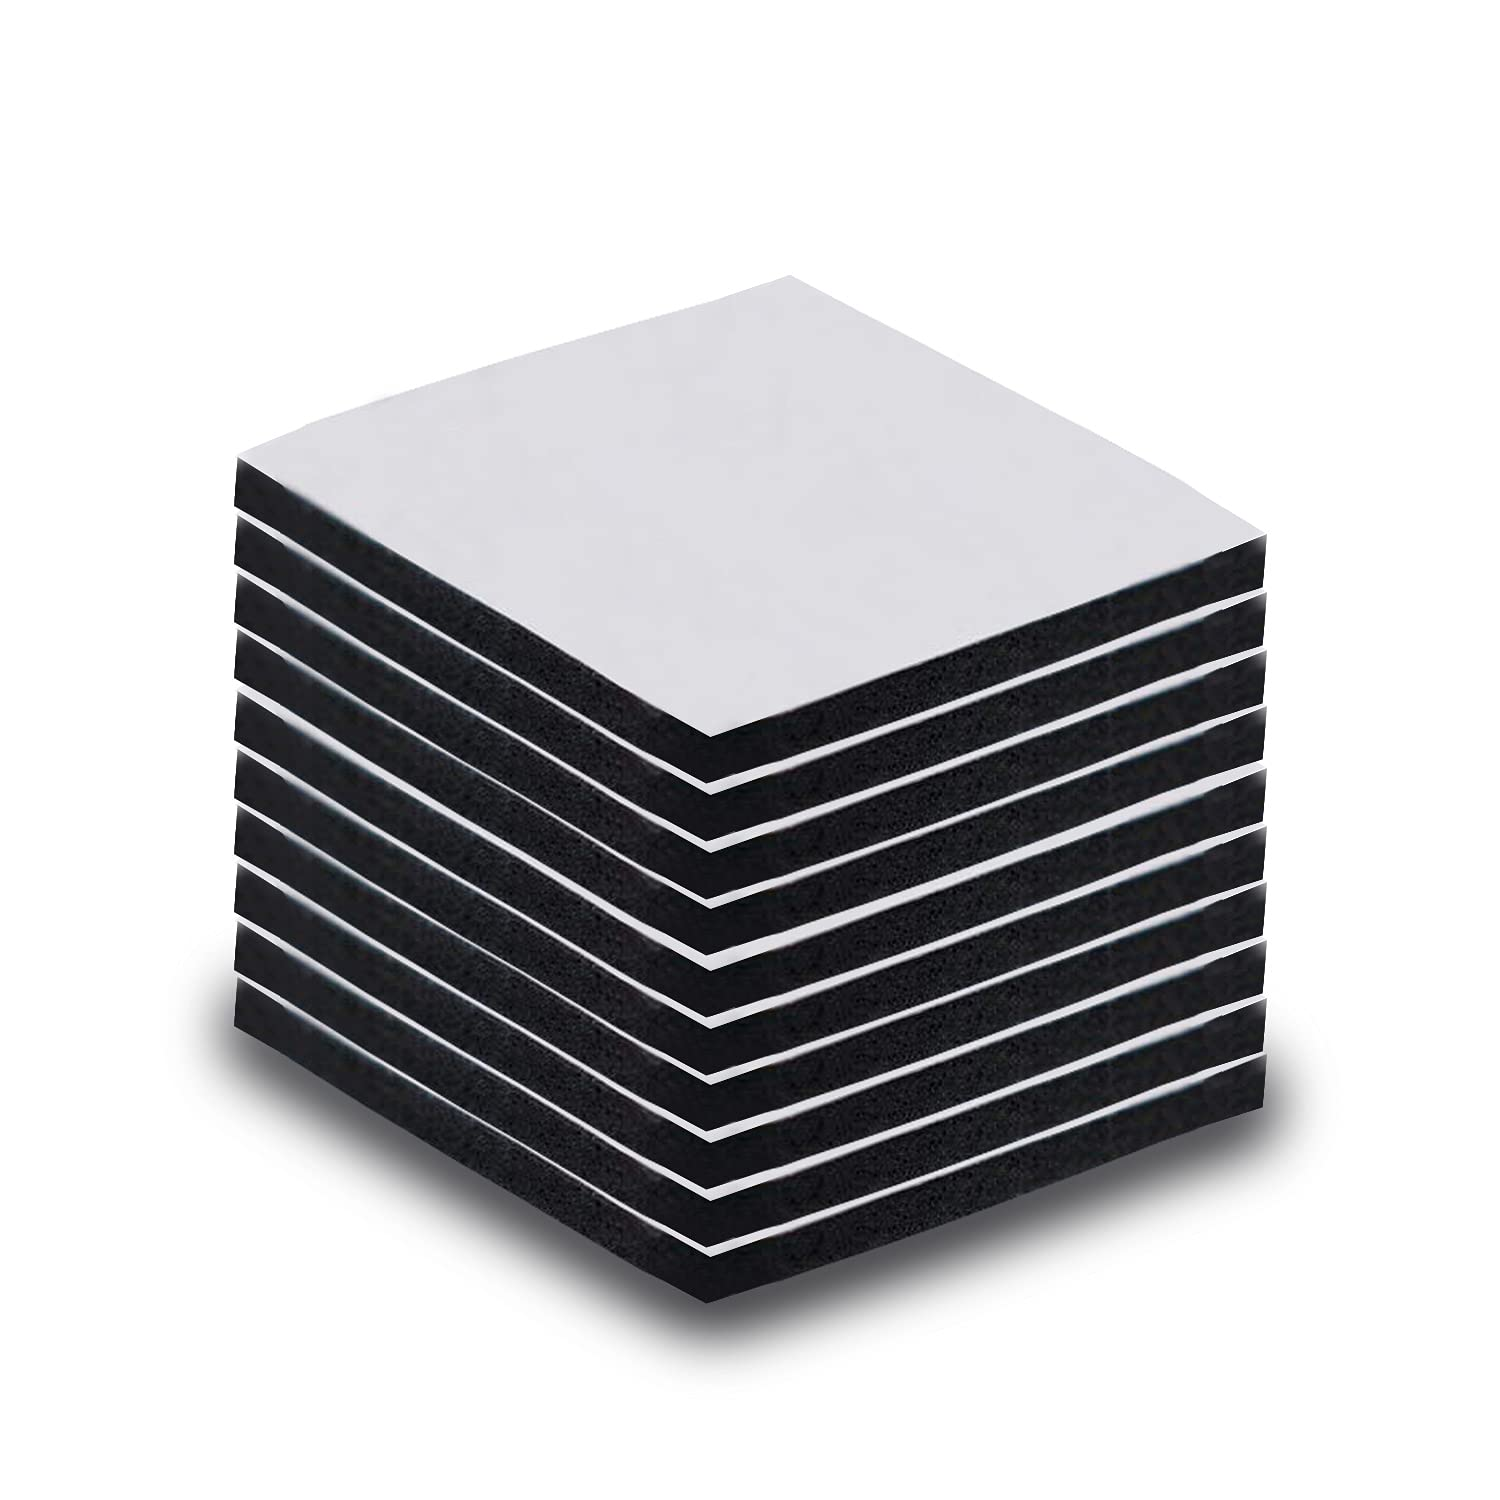 Double Sided Sticky Pads Black 10 Selling rankings Pcs Adhesive 1.57 Max 75% OFF Foam